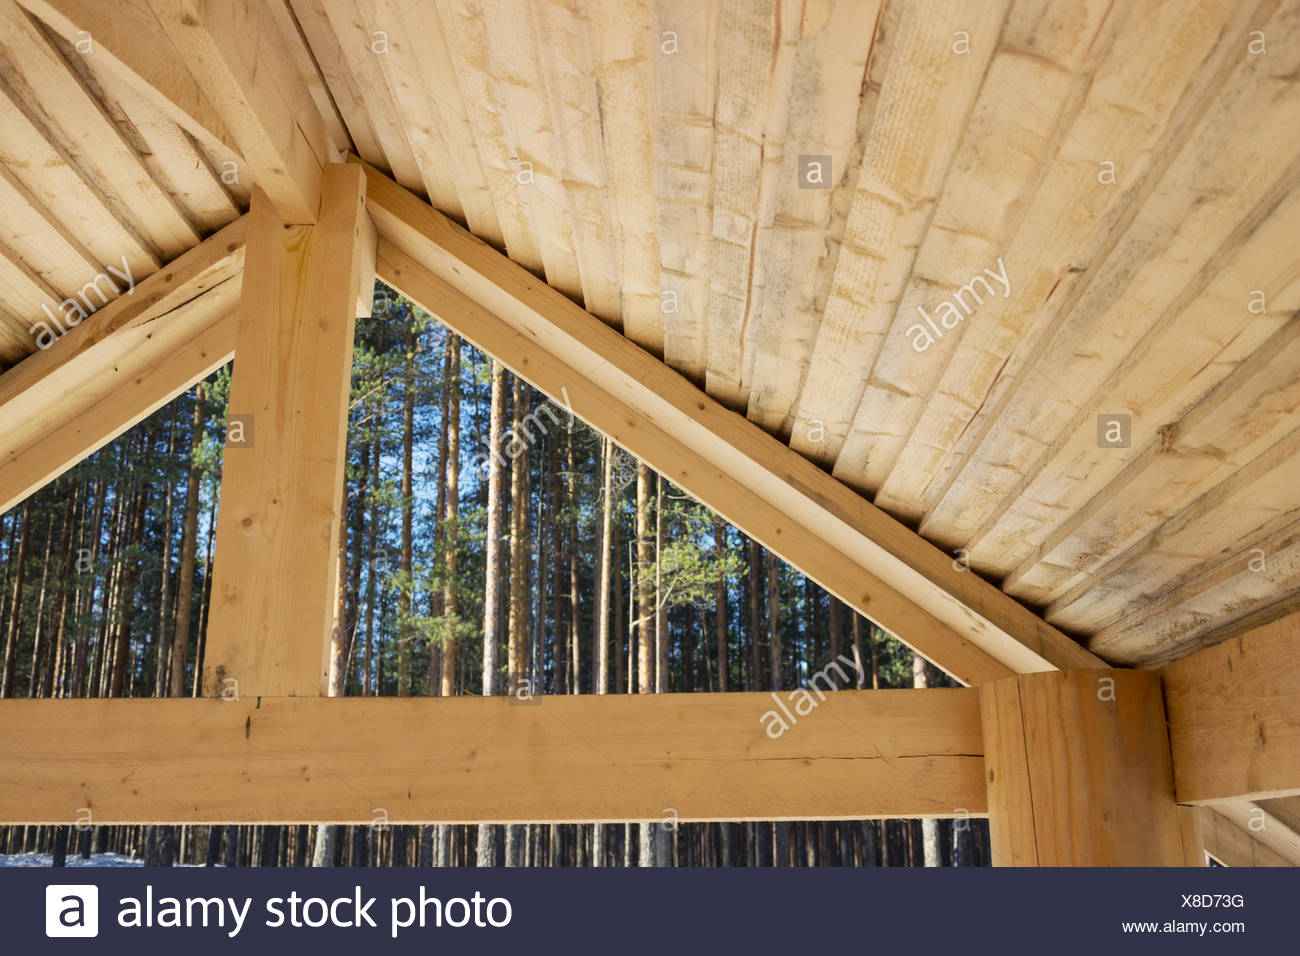 Internal surface of a wooden primitive roof - Stock Image